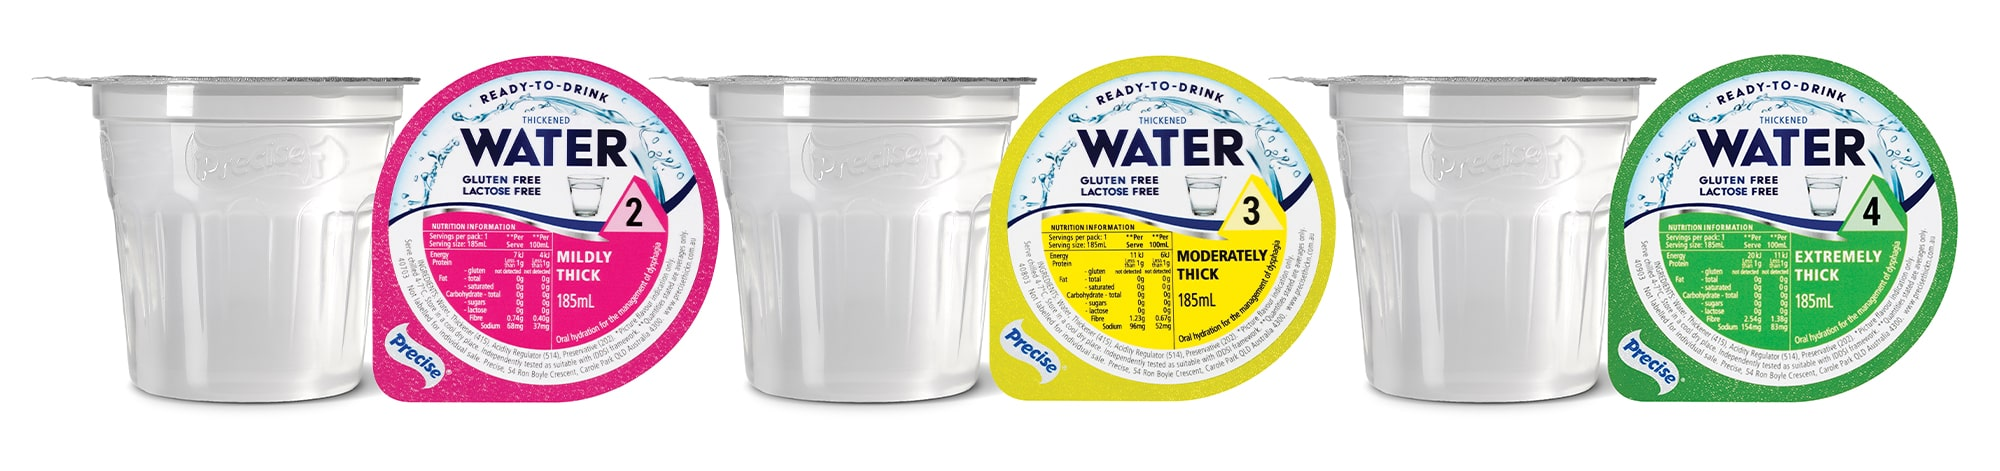 RTD Water